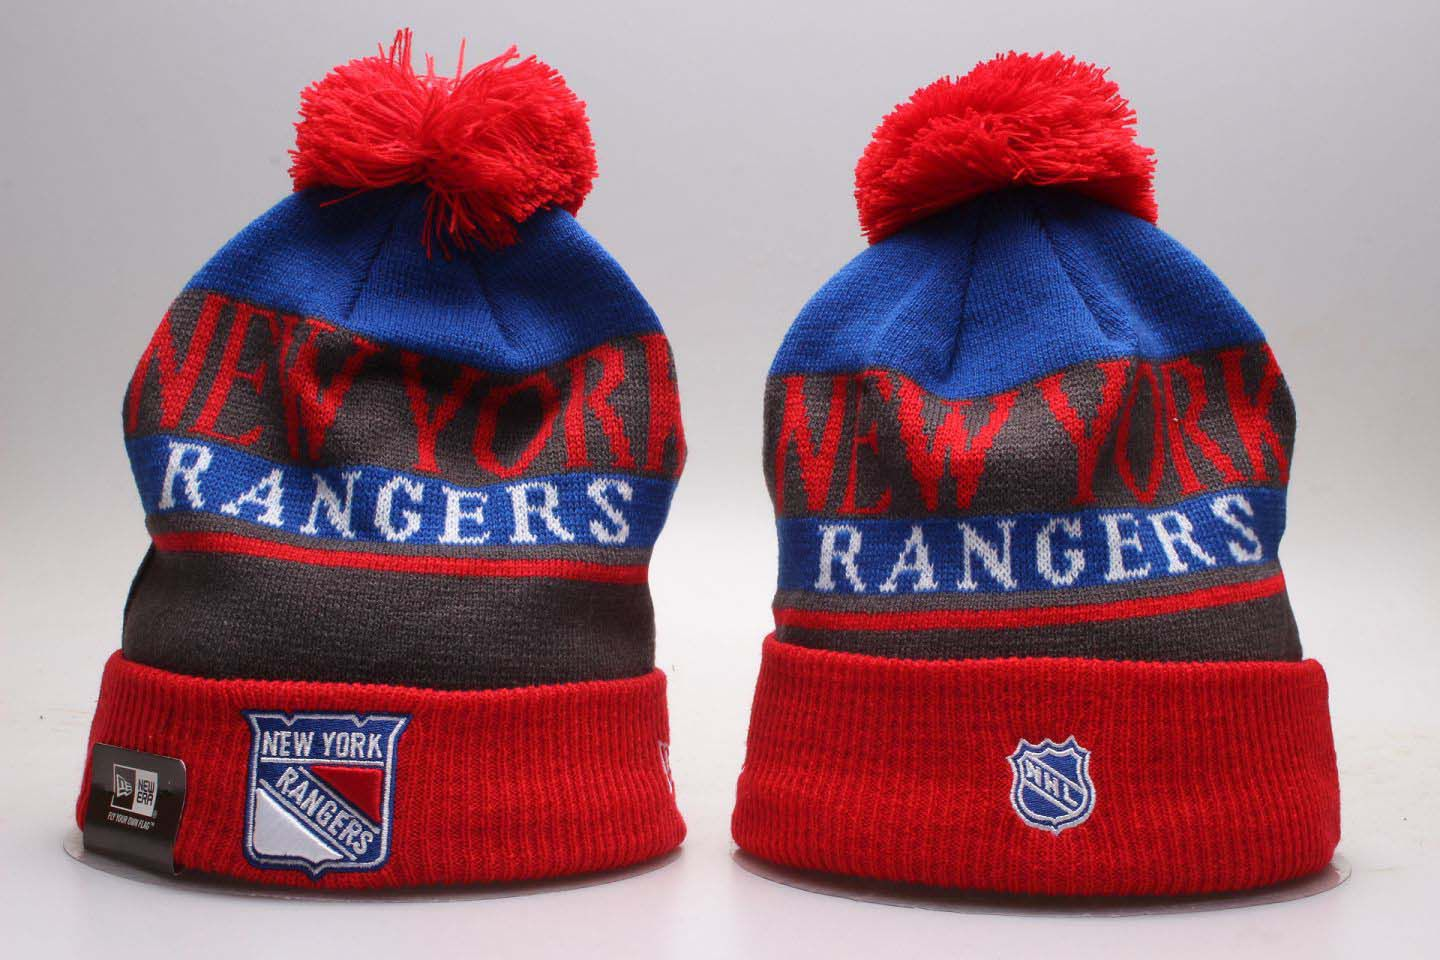 NHL New York Rangers Beanie hot hat